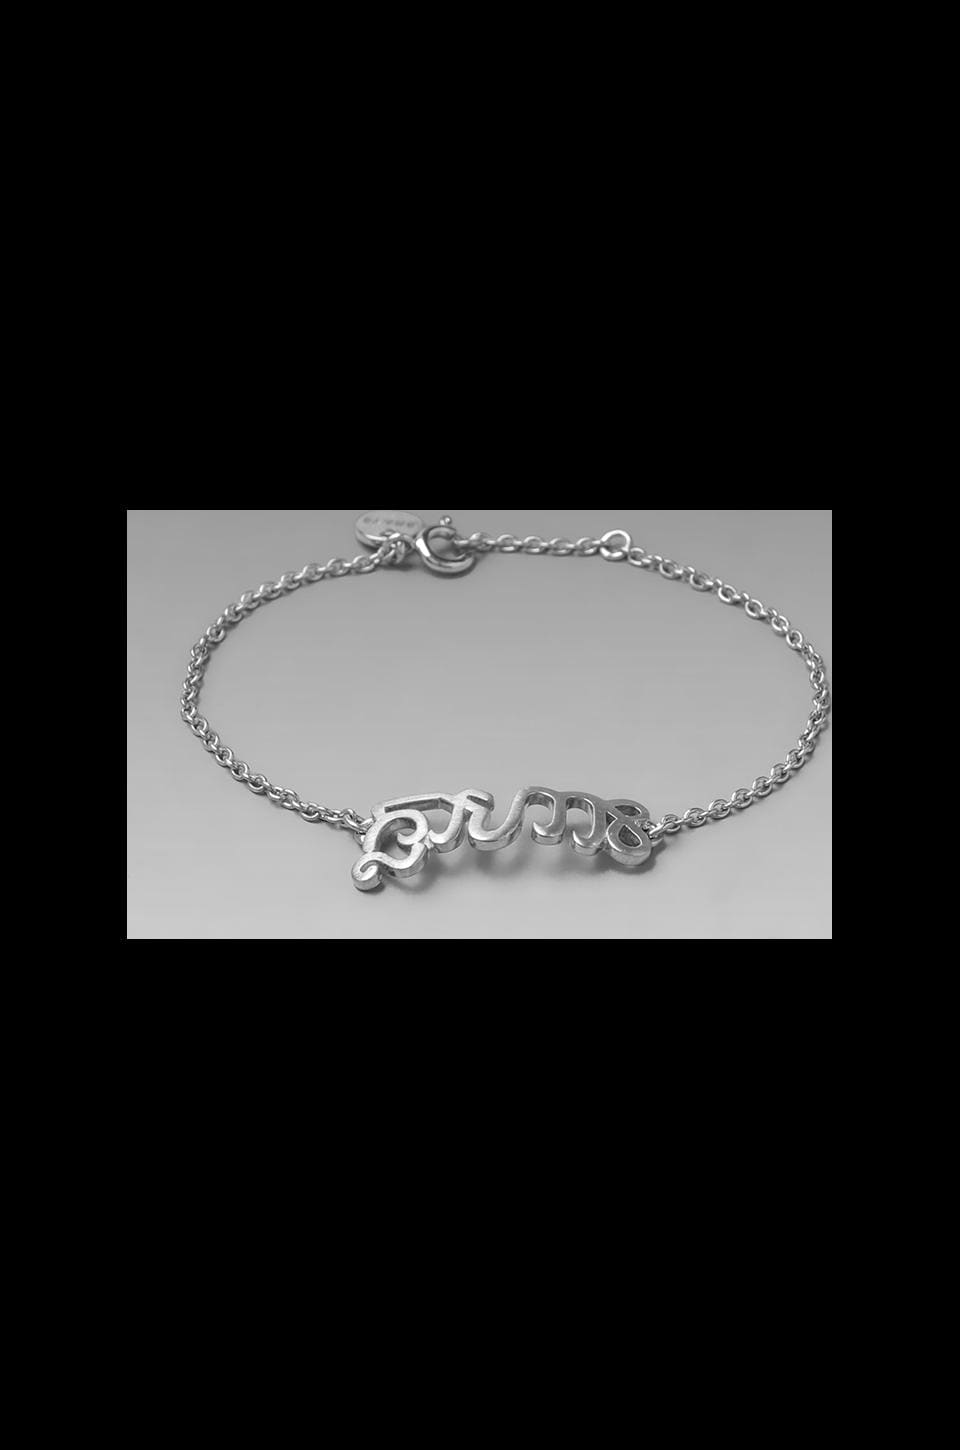 The Brave Collection Chain Bracelet in Sterling Silver